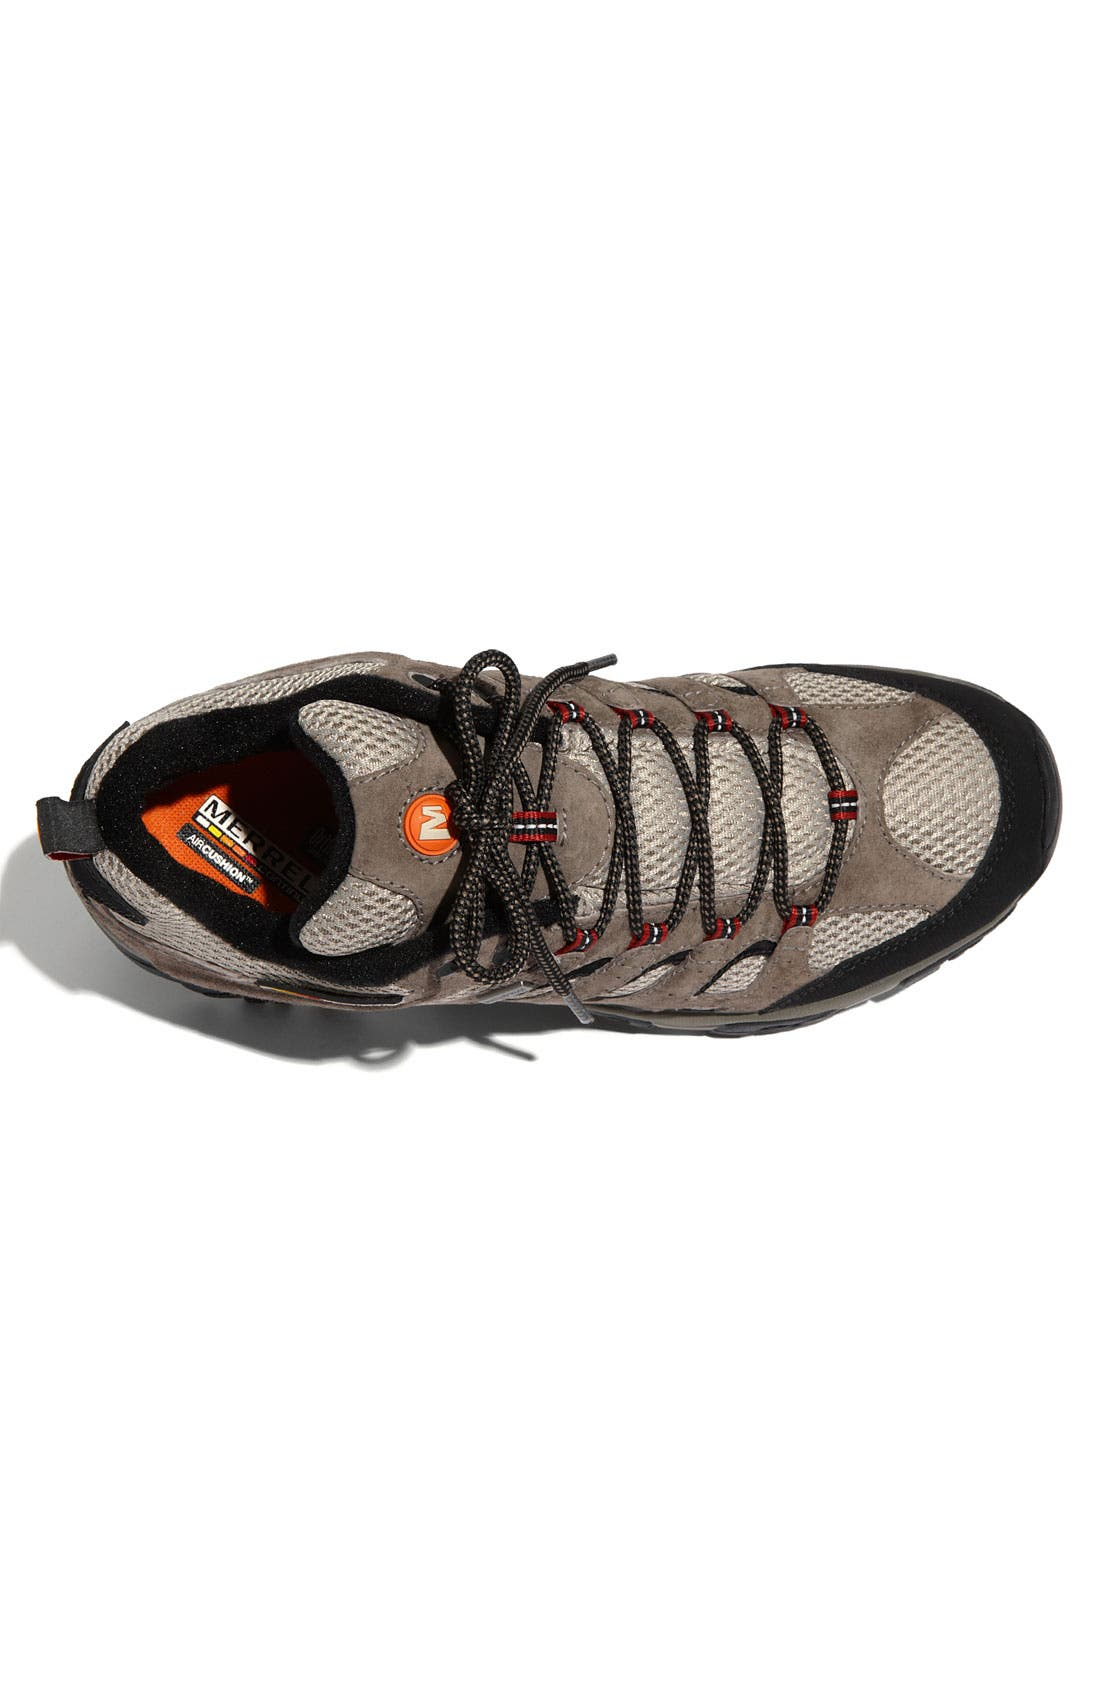 Alternate Image 3  - Merrell 'Moab' Waterproof Hiking Shoe (Men)